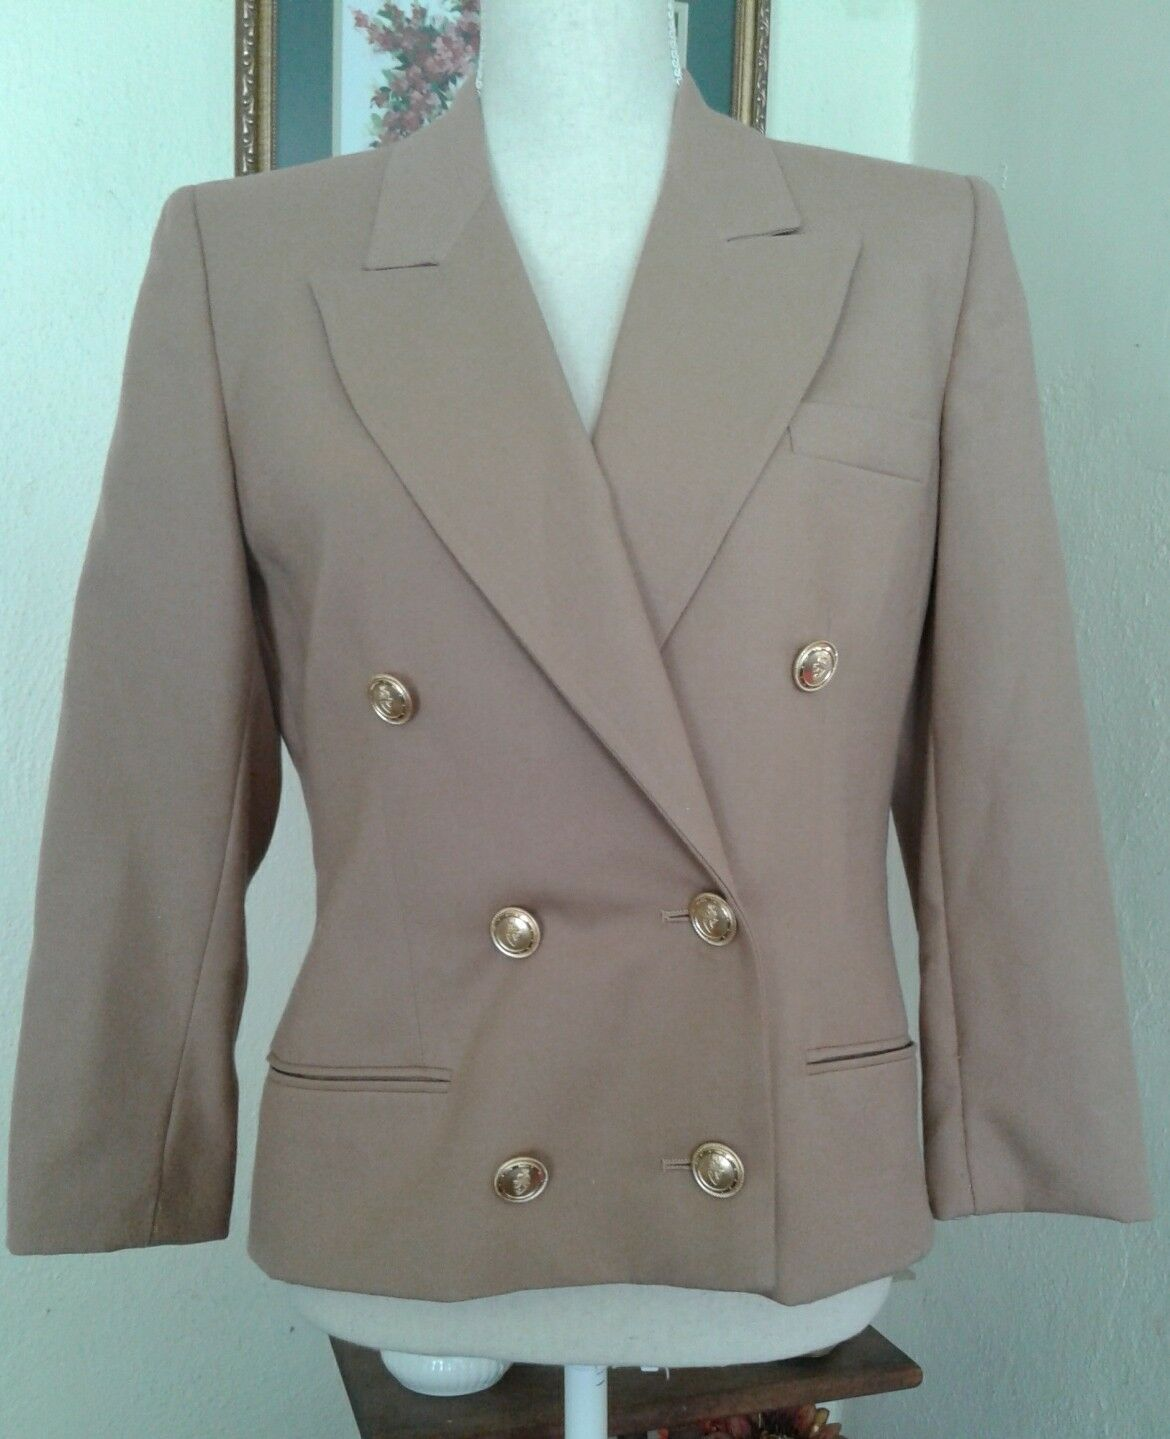 Talbots Petites Womens 6P Blazer Tan Beige 100% Worsted Wool Double Breasted